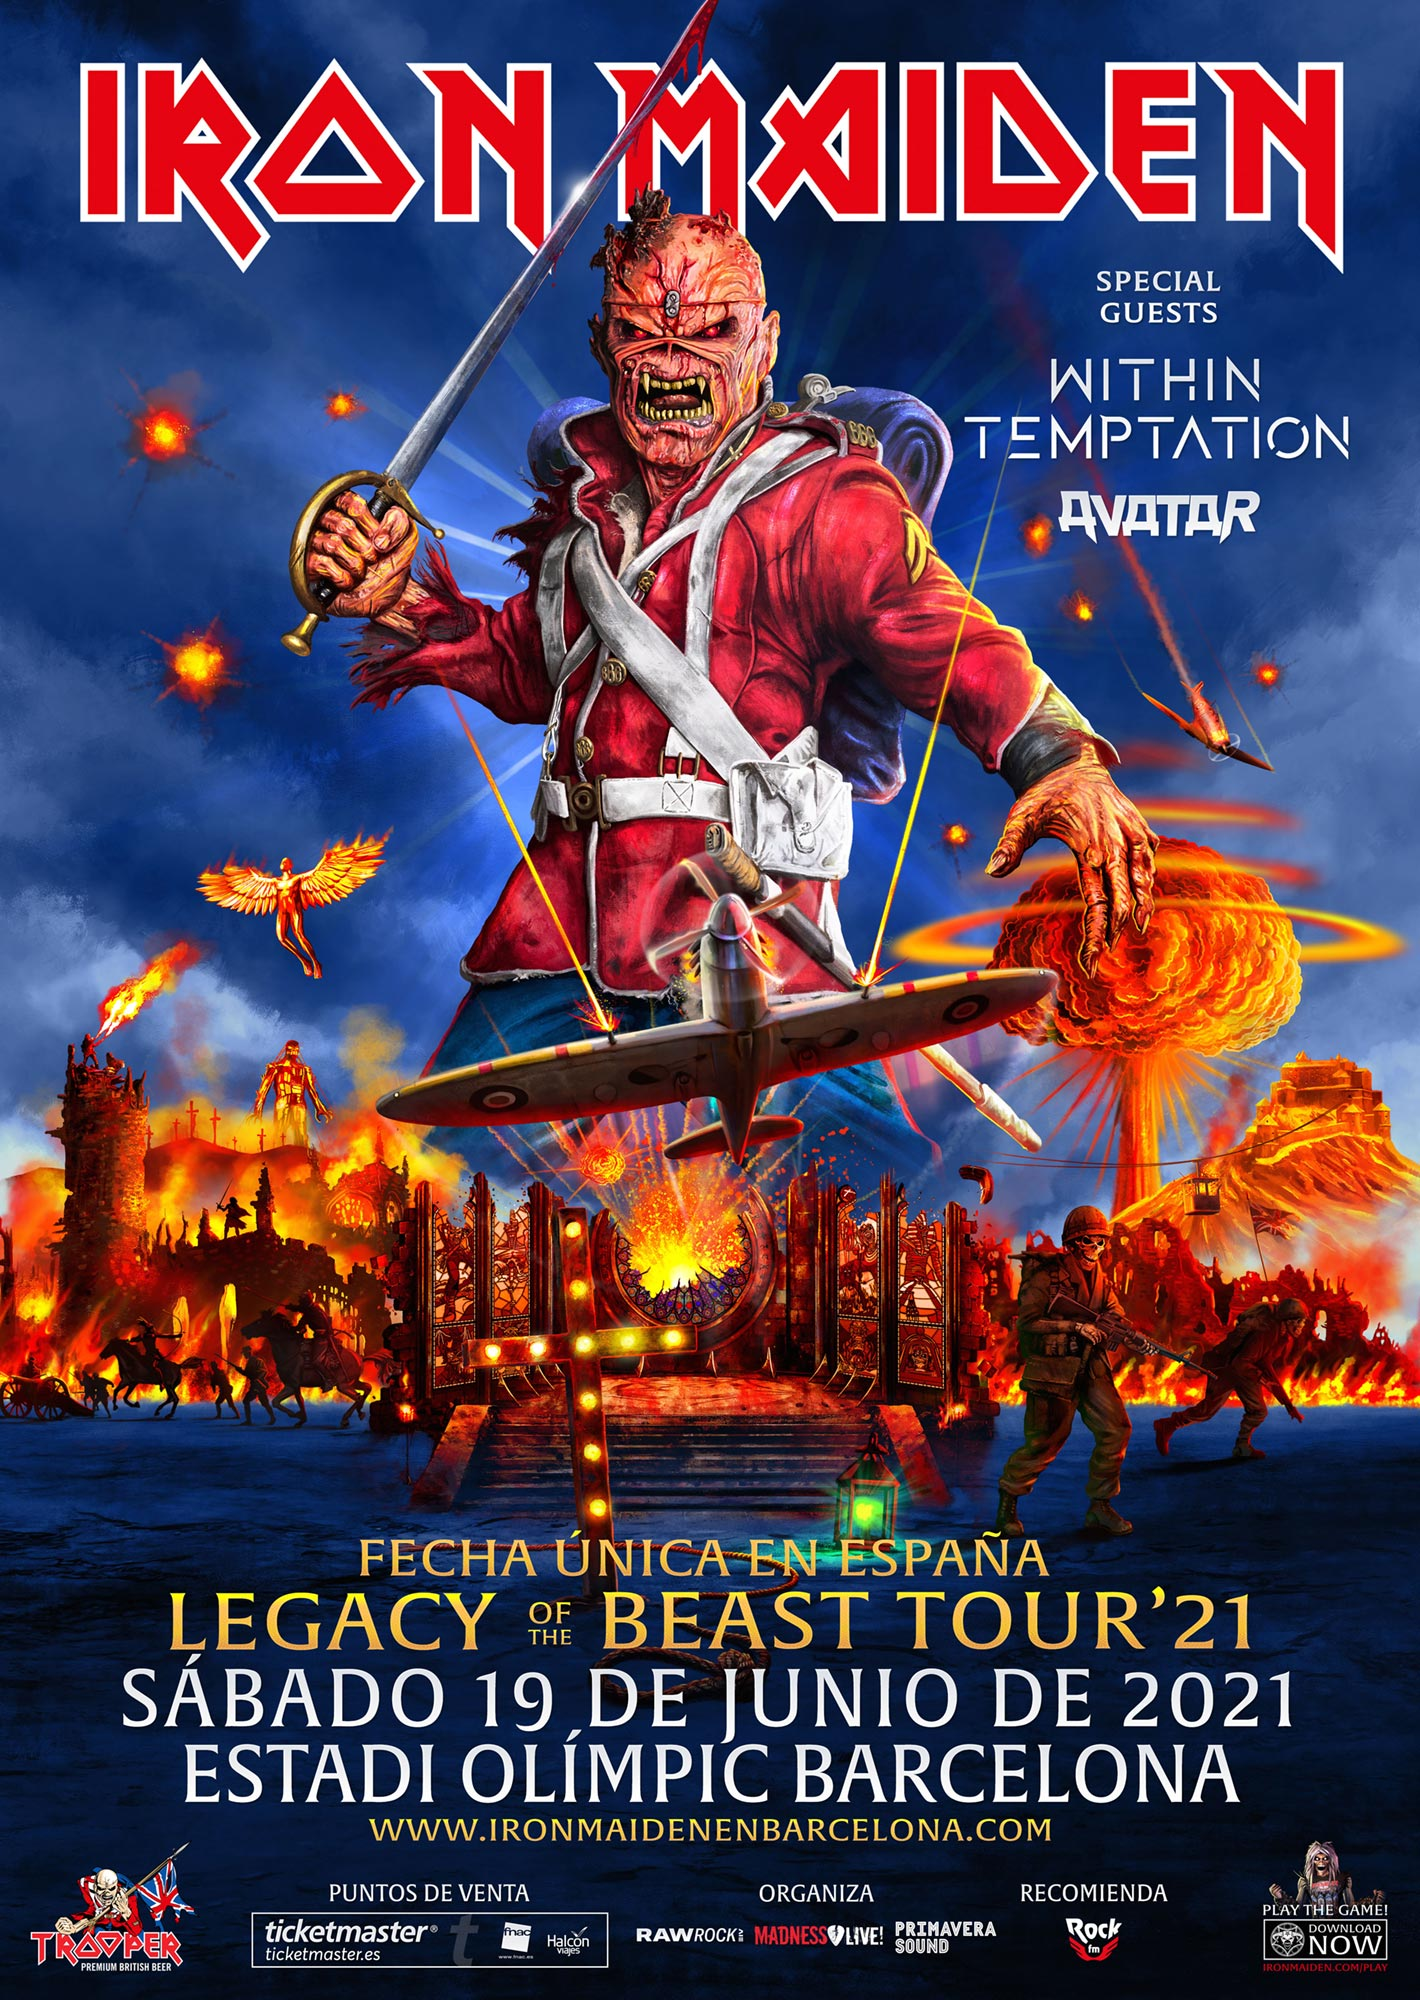 IRON MAIDEN – 19 JUNIO 2021 EN BARCELONA